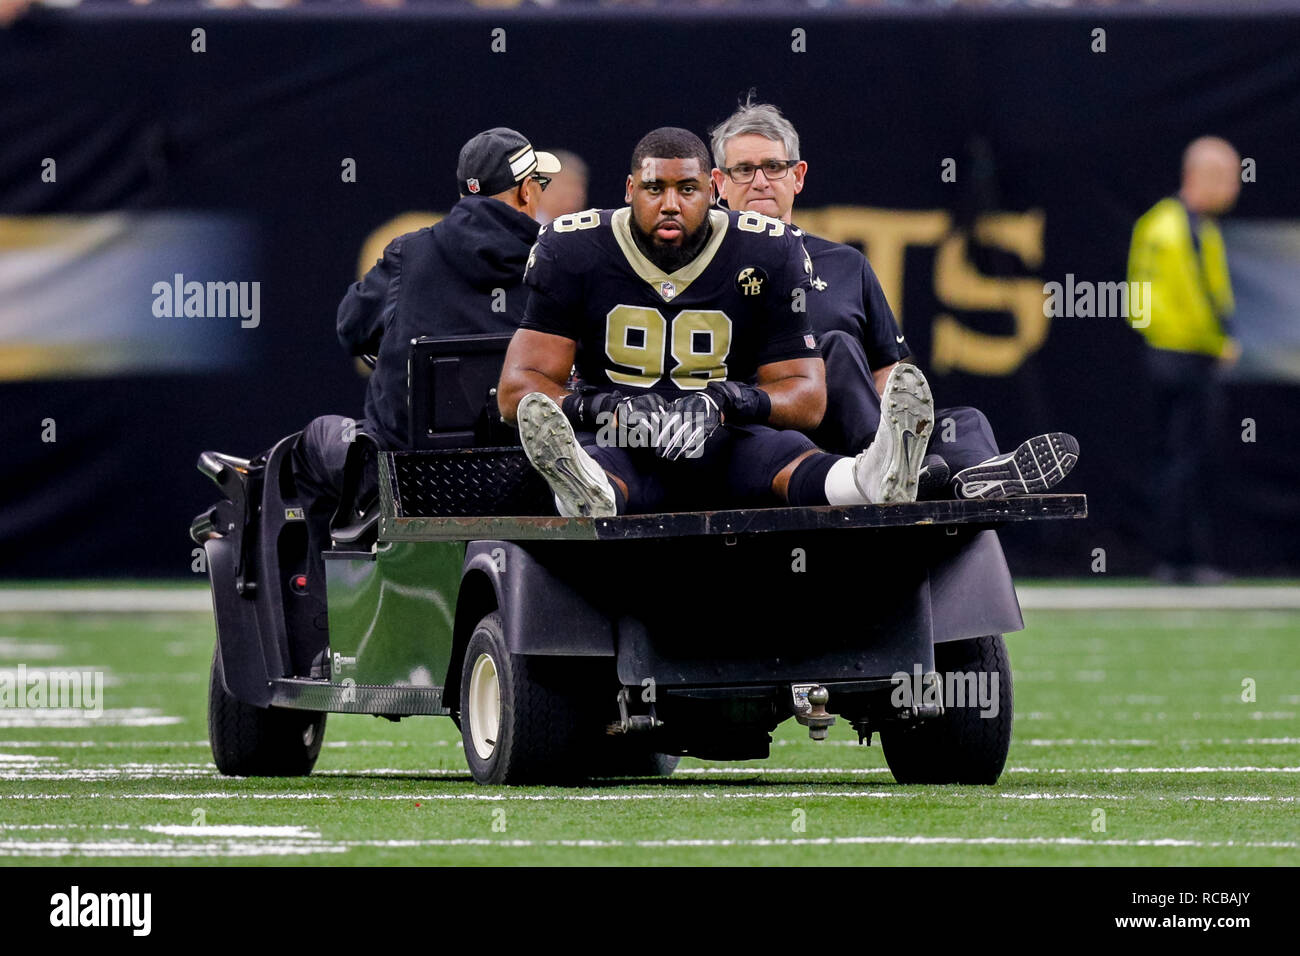 New Orleans, LA, USA. 13th Jan, 2019. New Orleans Saints defensive tackle Sheldon Rankins (98) is carted off the field with a torn achilles against Philadelphia Eagles at the Mercedes-Benz Superdome in New Orleans, LA. Stephen Lew/CSM/Alamy Live News - Stock Image